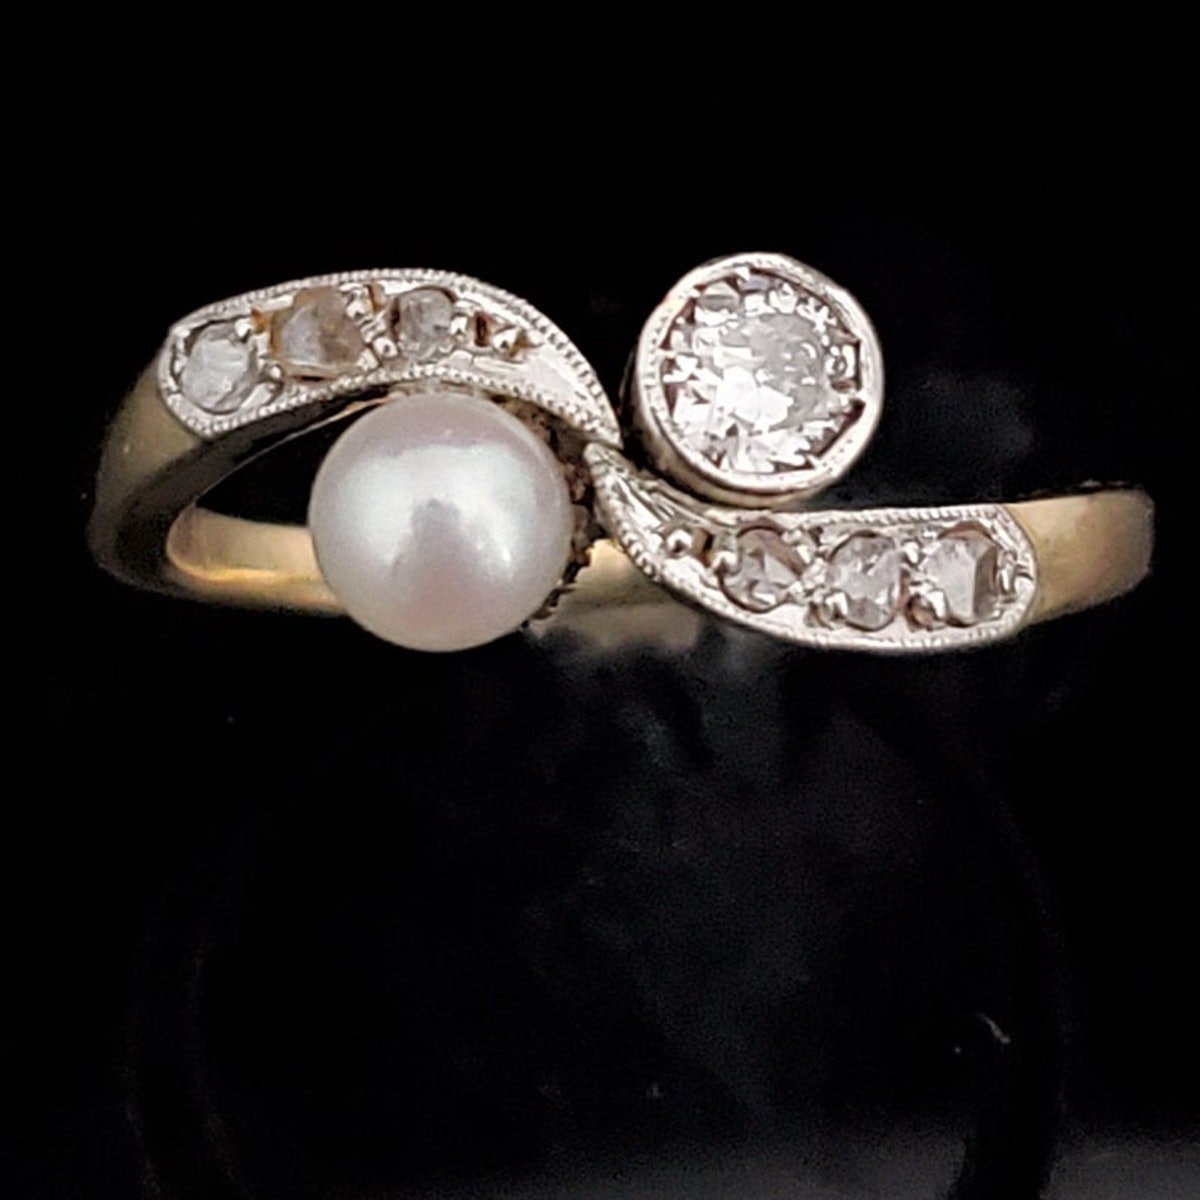 Vintage Pearl Transitional Cut Diamond 18k Gold Toi at Moi Ring Two Gemstone